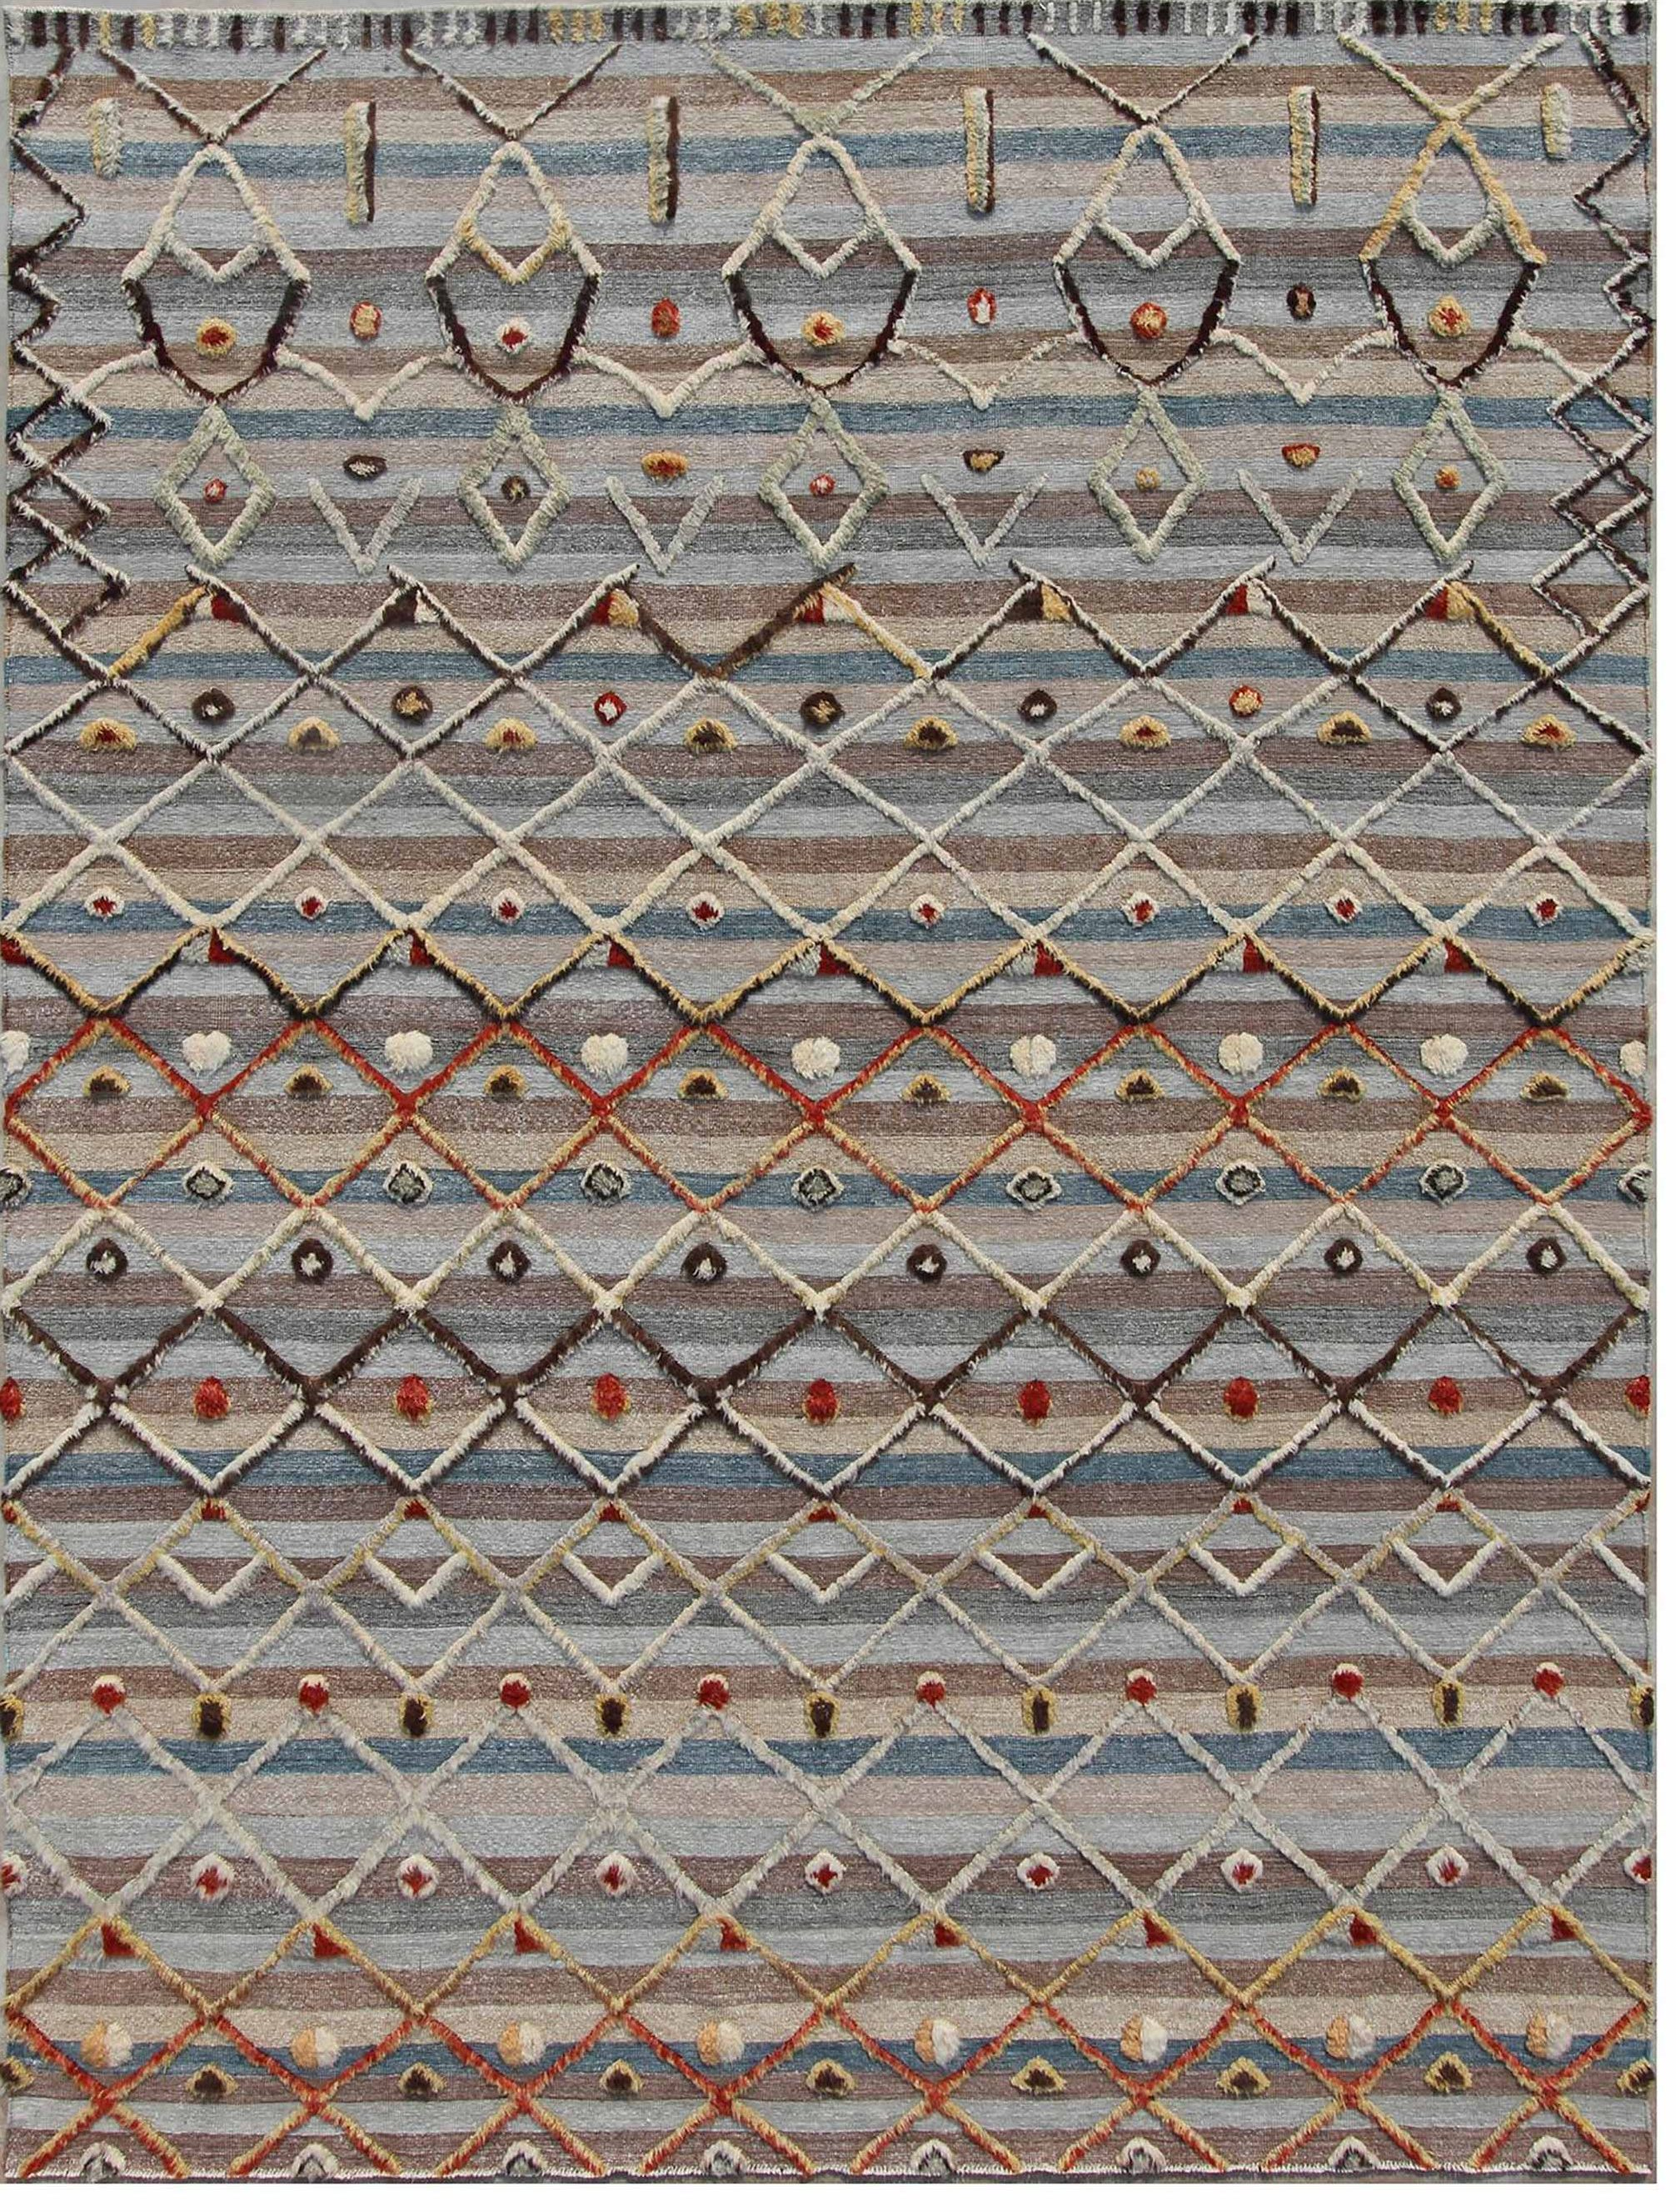 Un-Official Selection, Best Flatweave Design: Souf Collection, BJT 18, Art Resources - www.artresources.us | Image courtesy of Art Resources/Domotex.